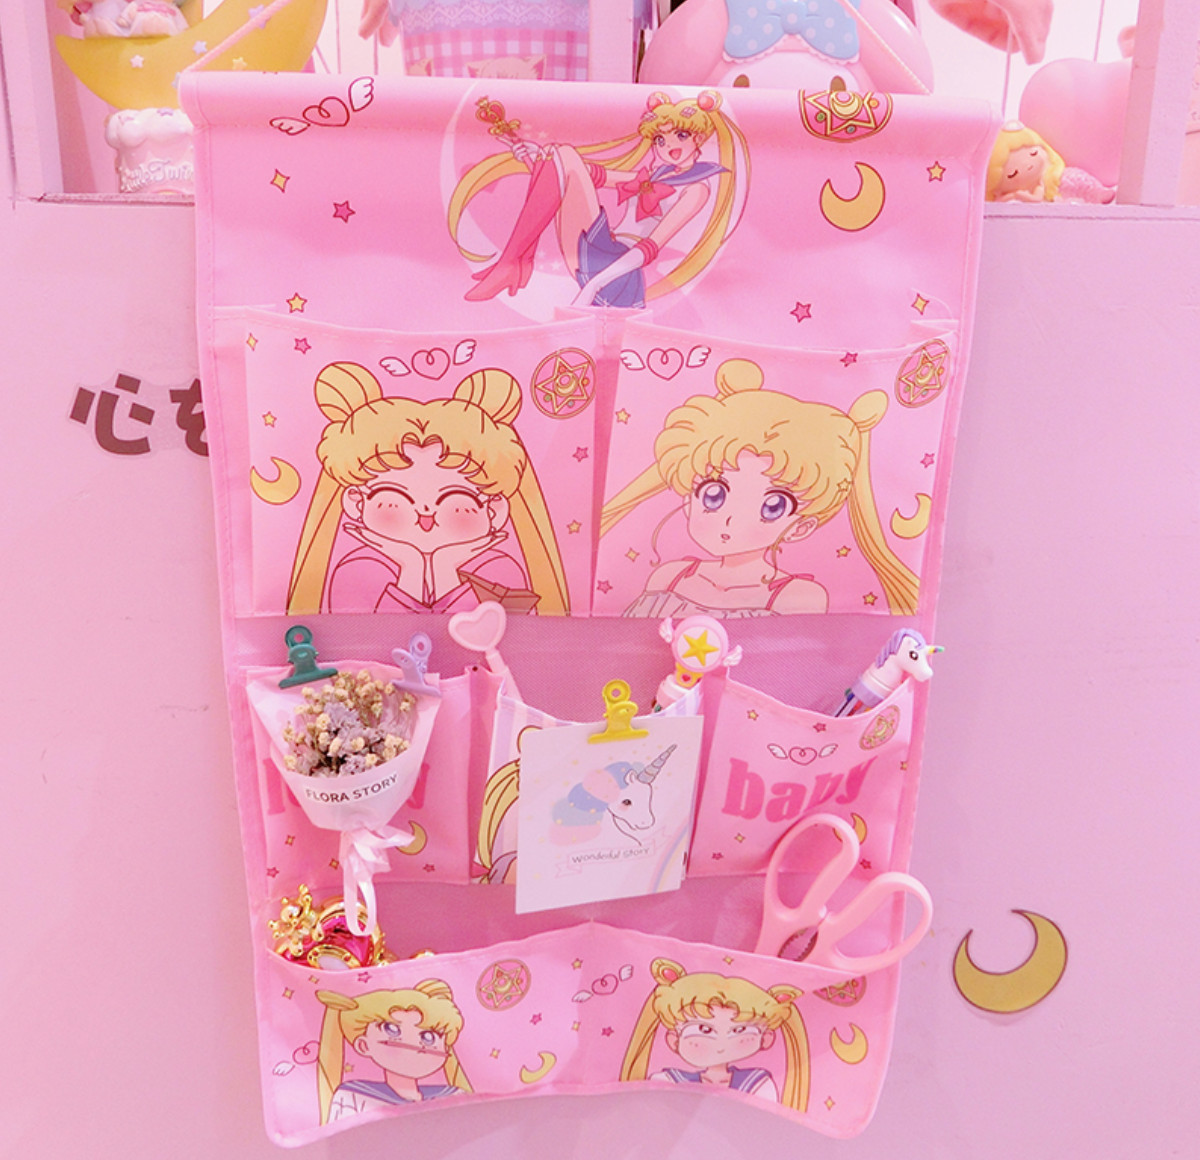 SAILOR MOON WALL HANGING POCKETS from OCEAN KAWAII